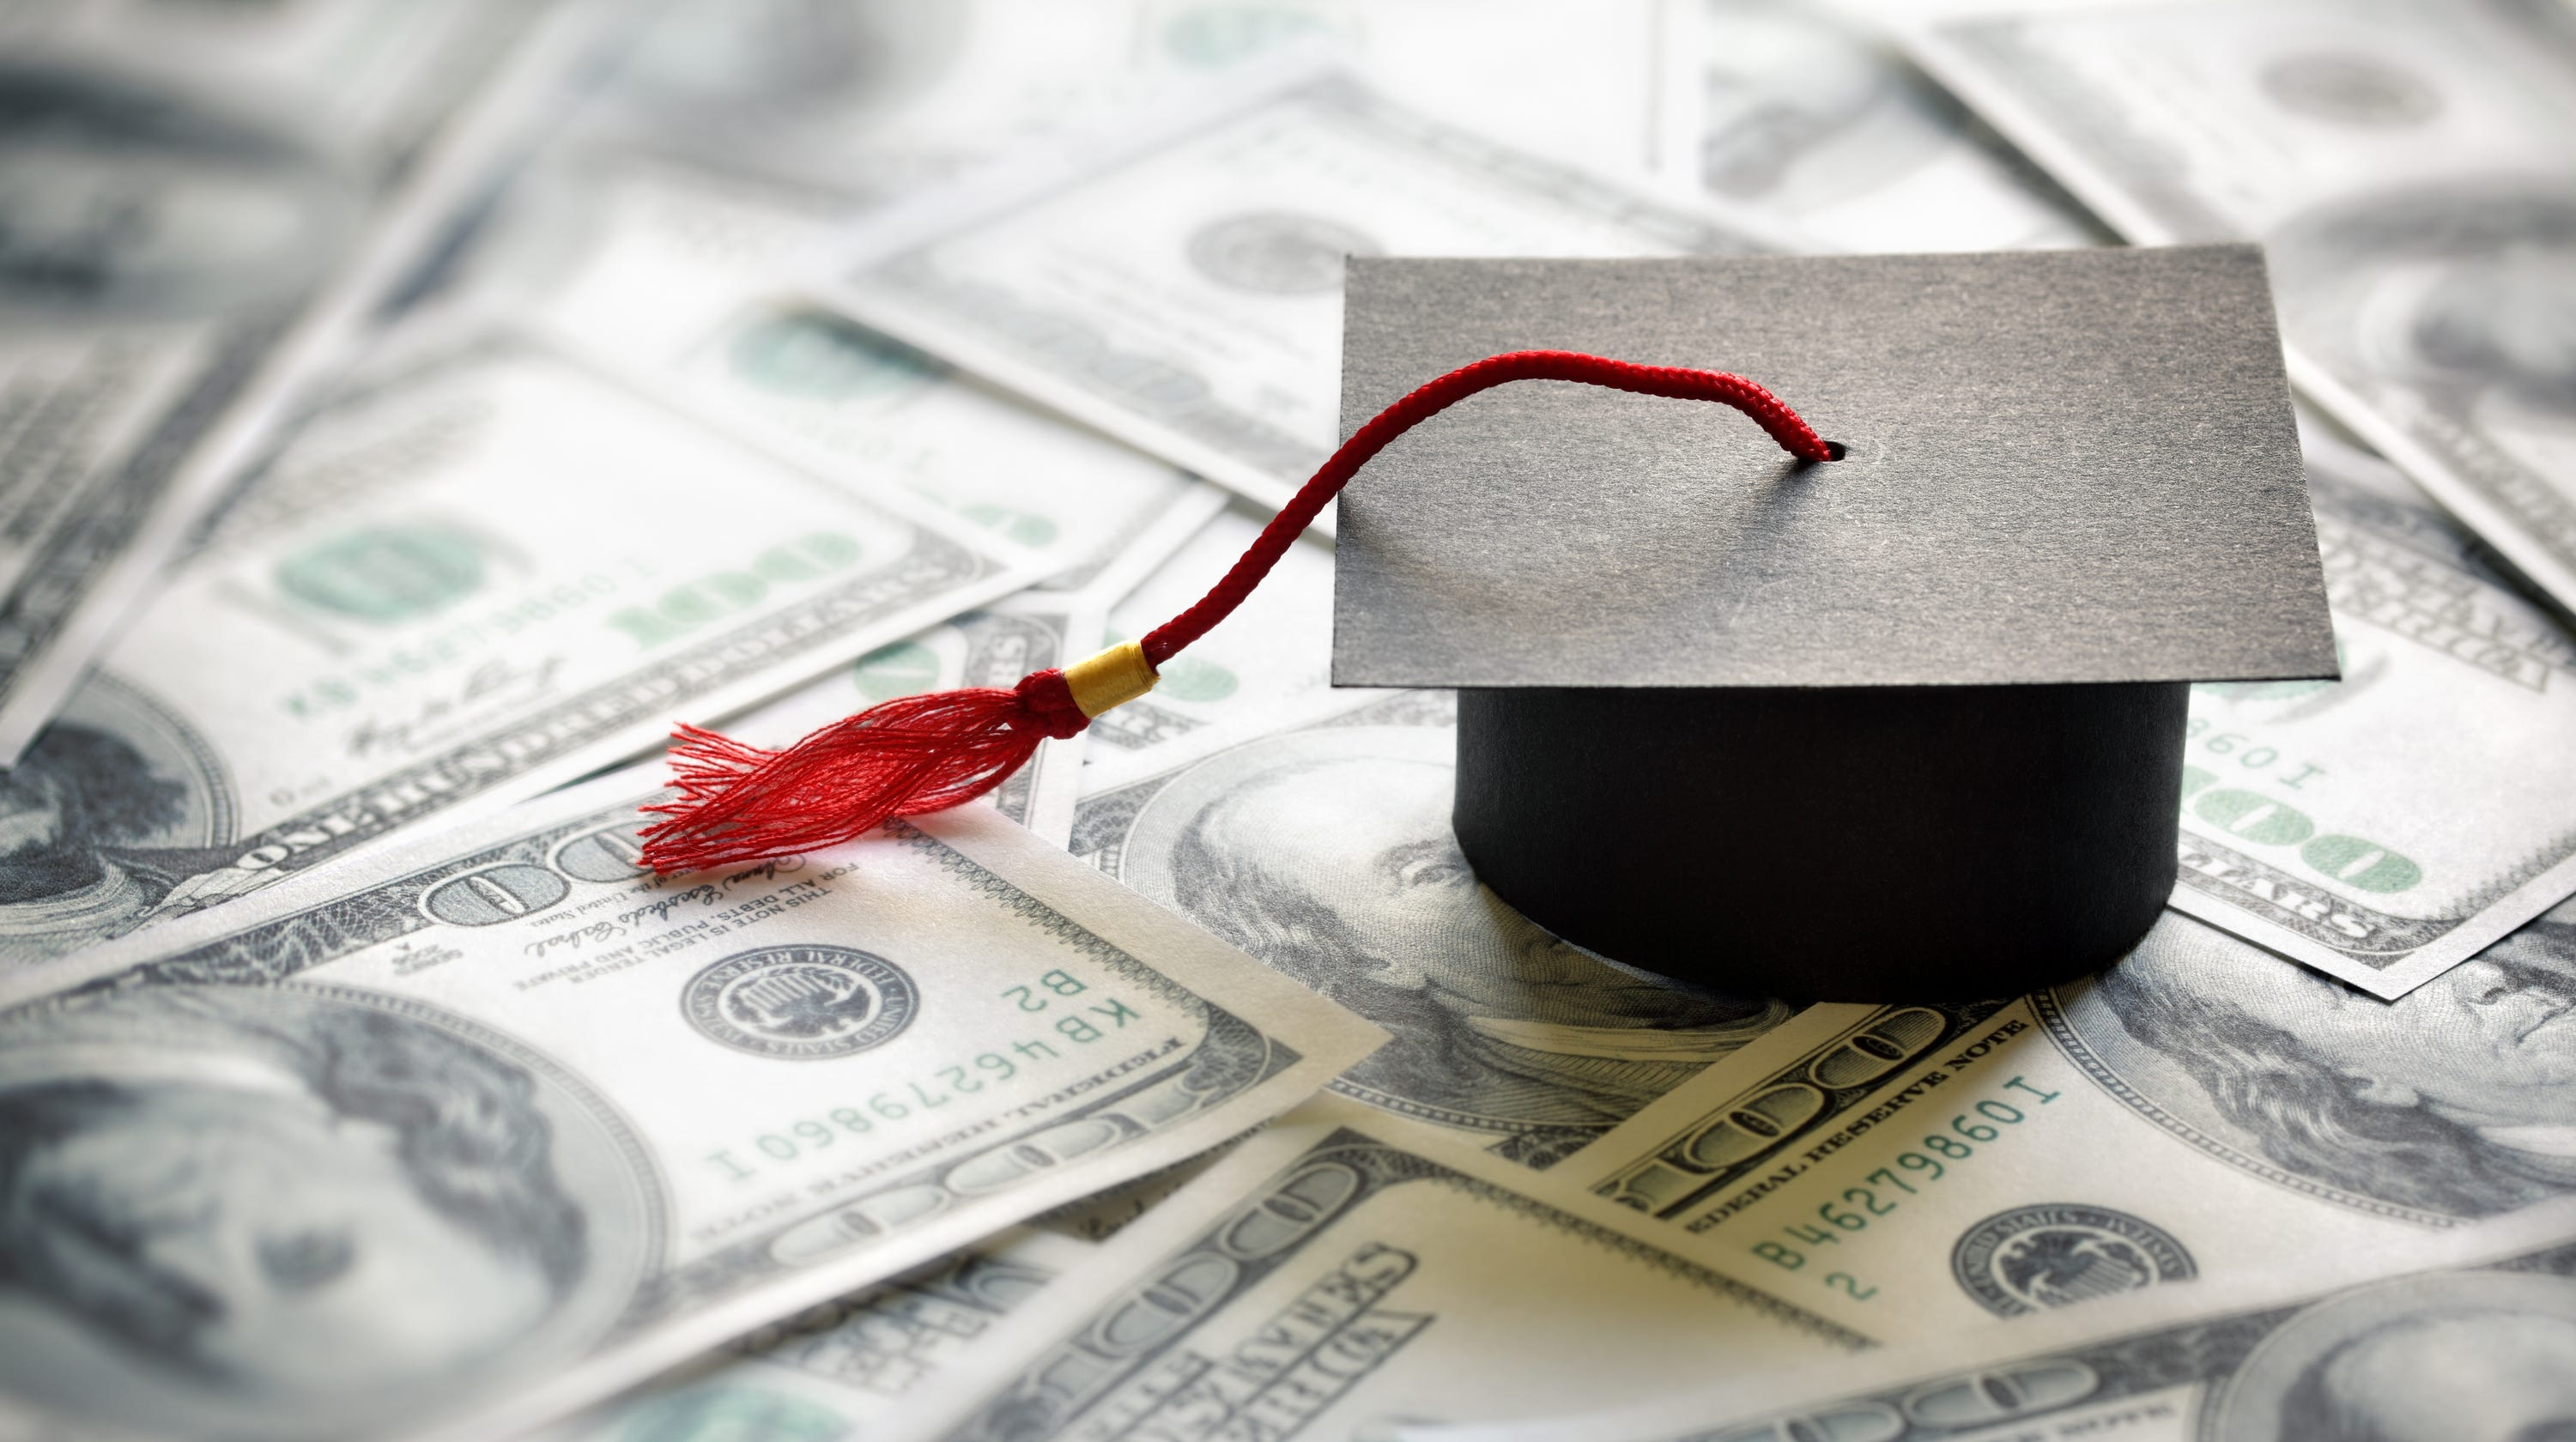 New College Board scholarships have no minimum GPA, SAT requirements